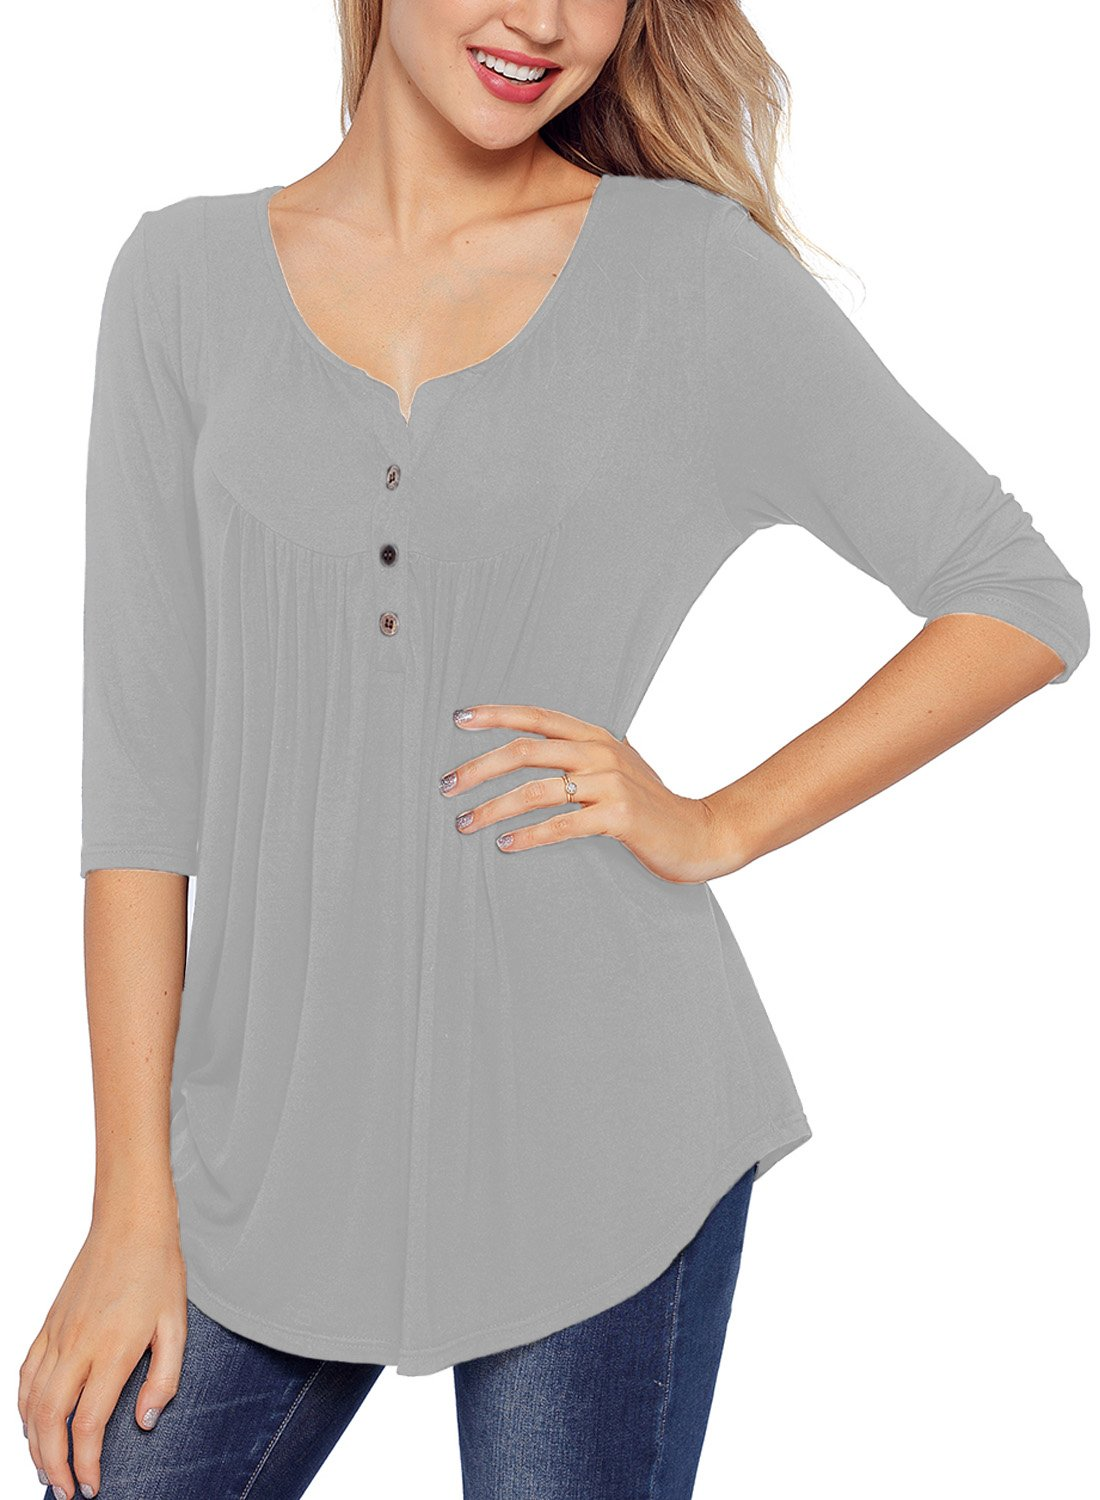 HOTAPEI Women Henley Shirts and Blouses Plus Size Solid Loose Tunic Tops for Women 3/4 Sleeve Gray X-Large